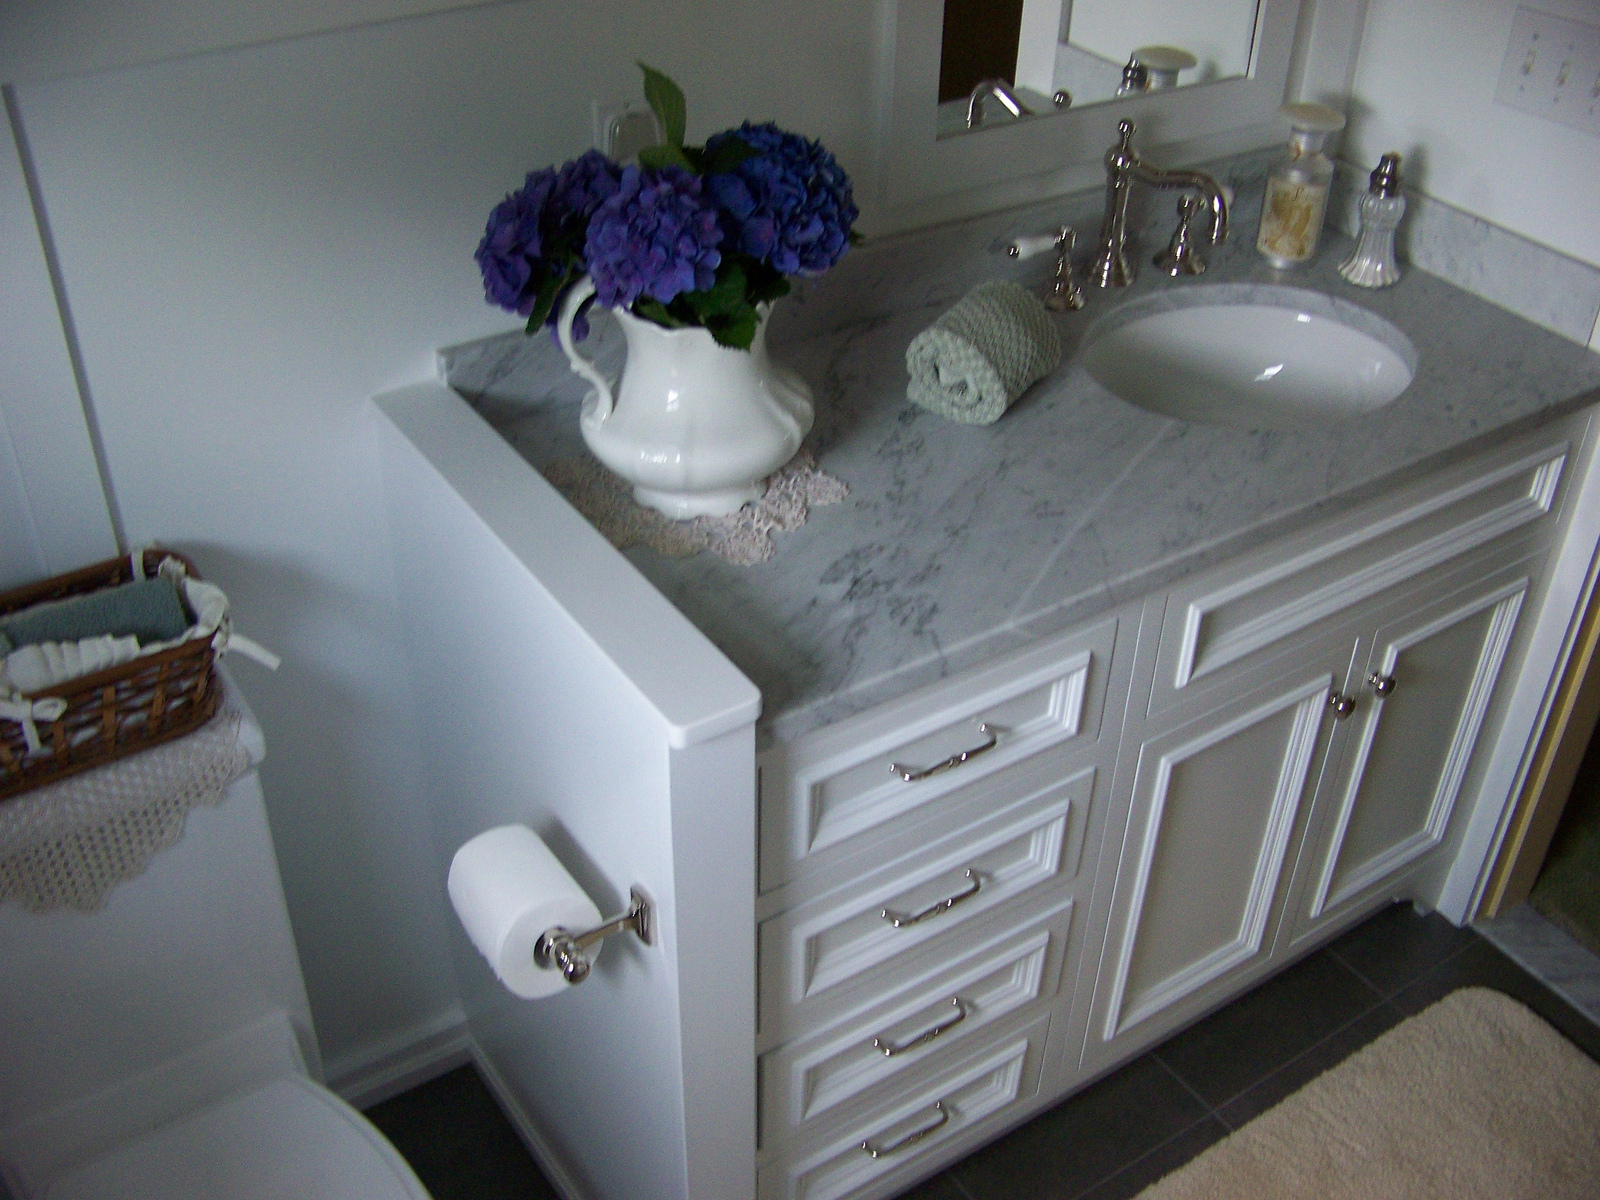 Bathroom Remodeling Ri recent projects | kmd custom woodworking - (401) 639-8140 - part 3